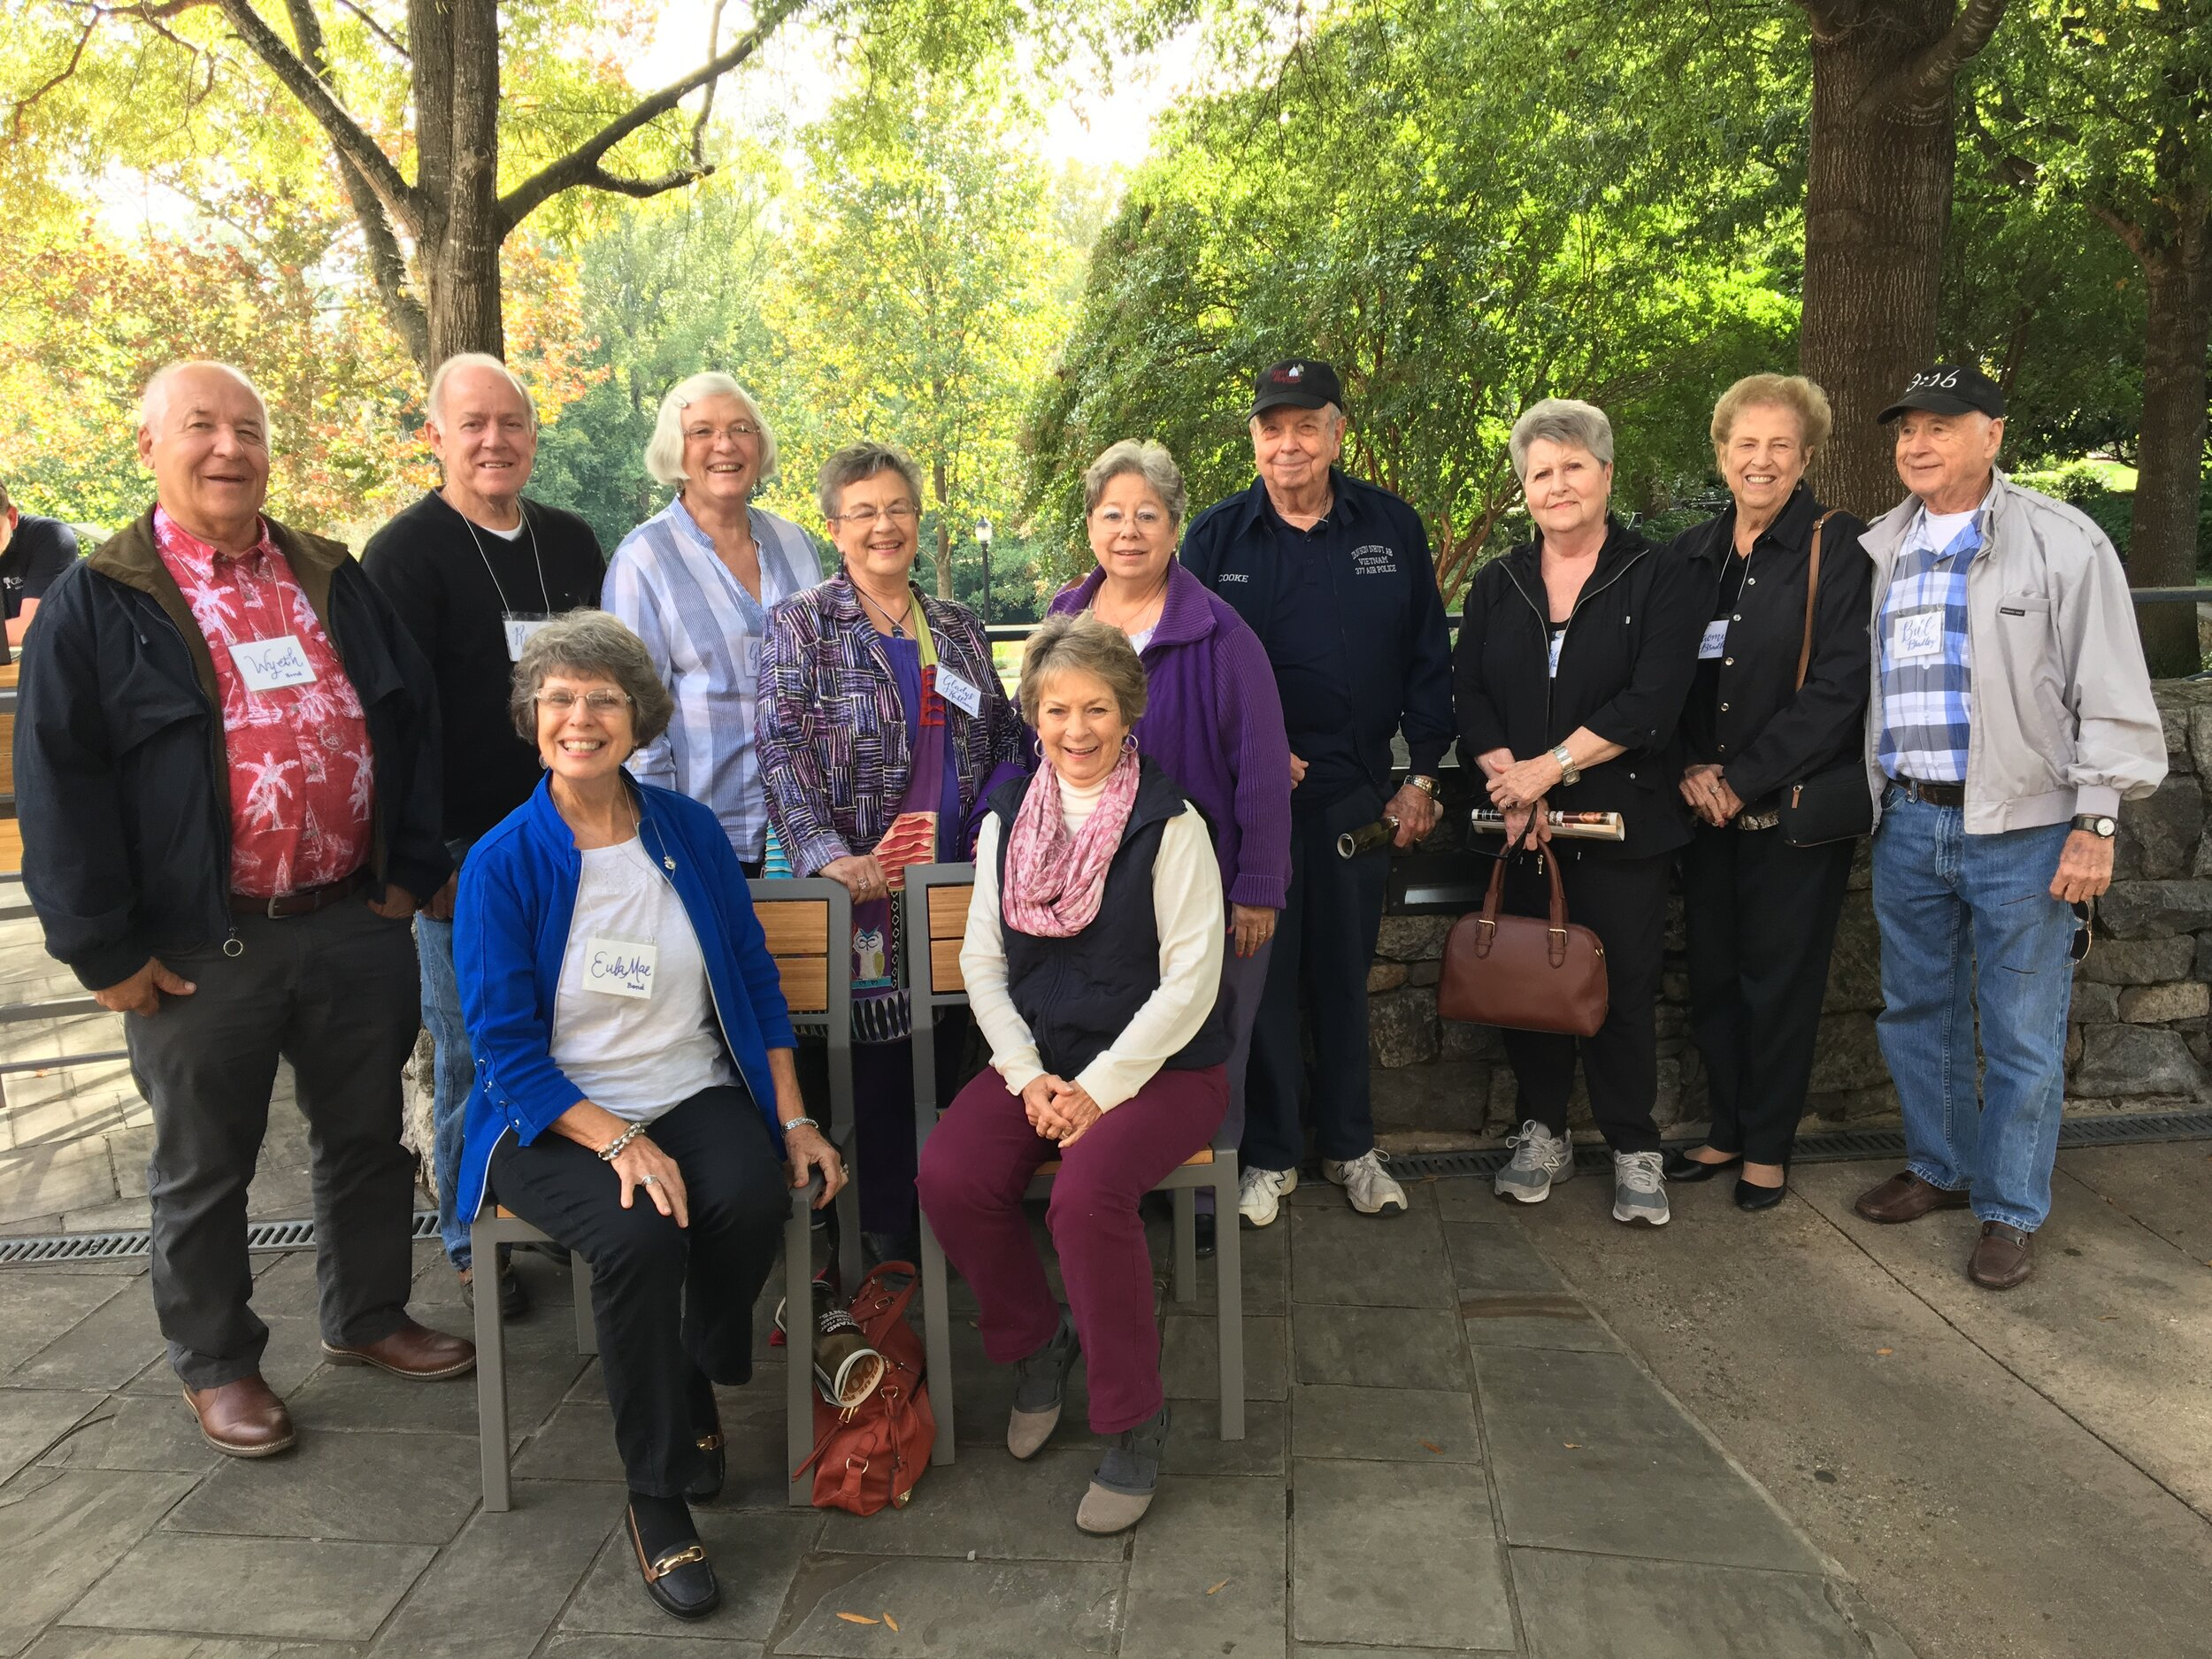 """""""O.W.L.S."""" Older. Wiser. Loving. Seniors. - photo: on recent trip to Falls Park on the Reedy, Greenville, SC"""